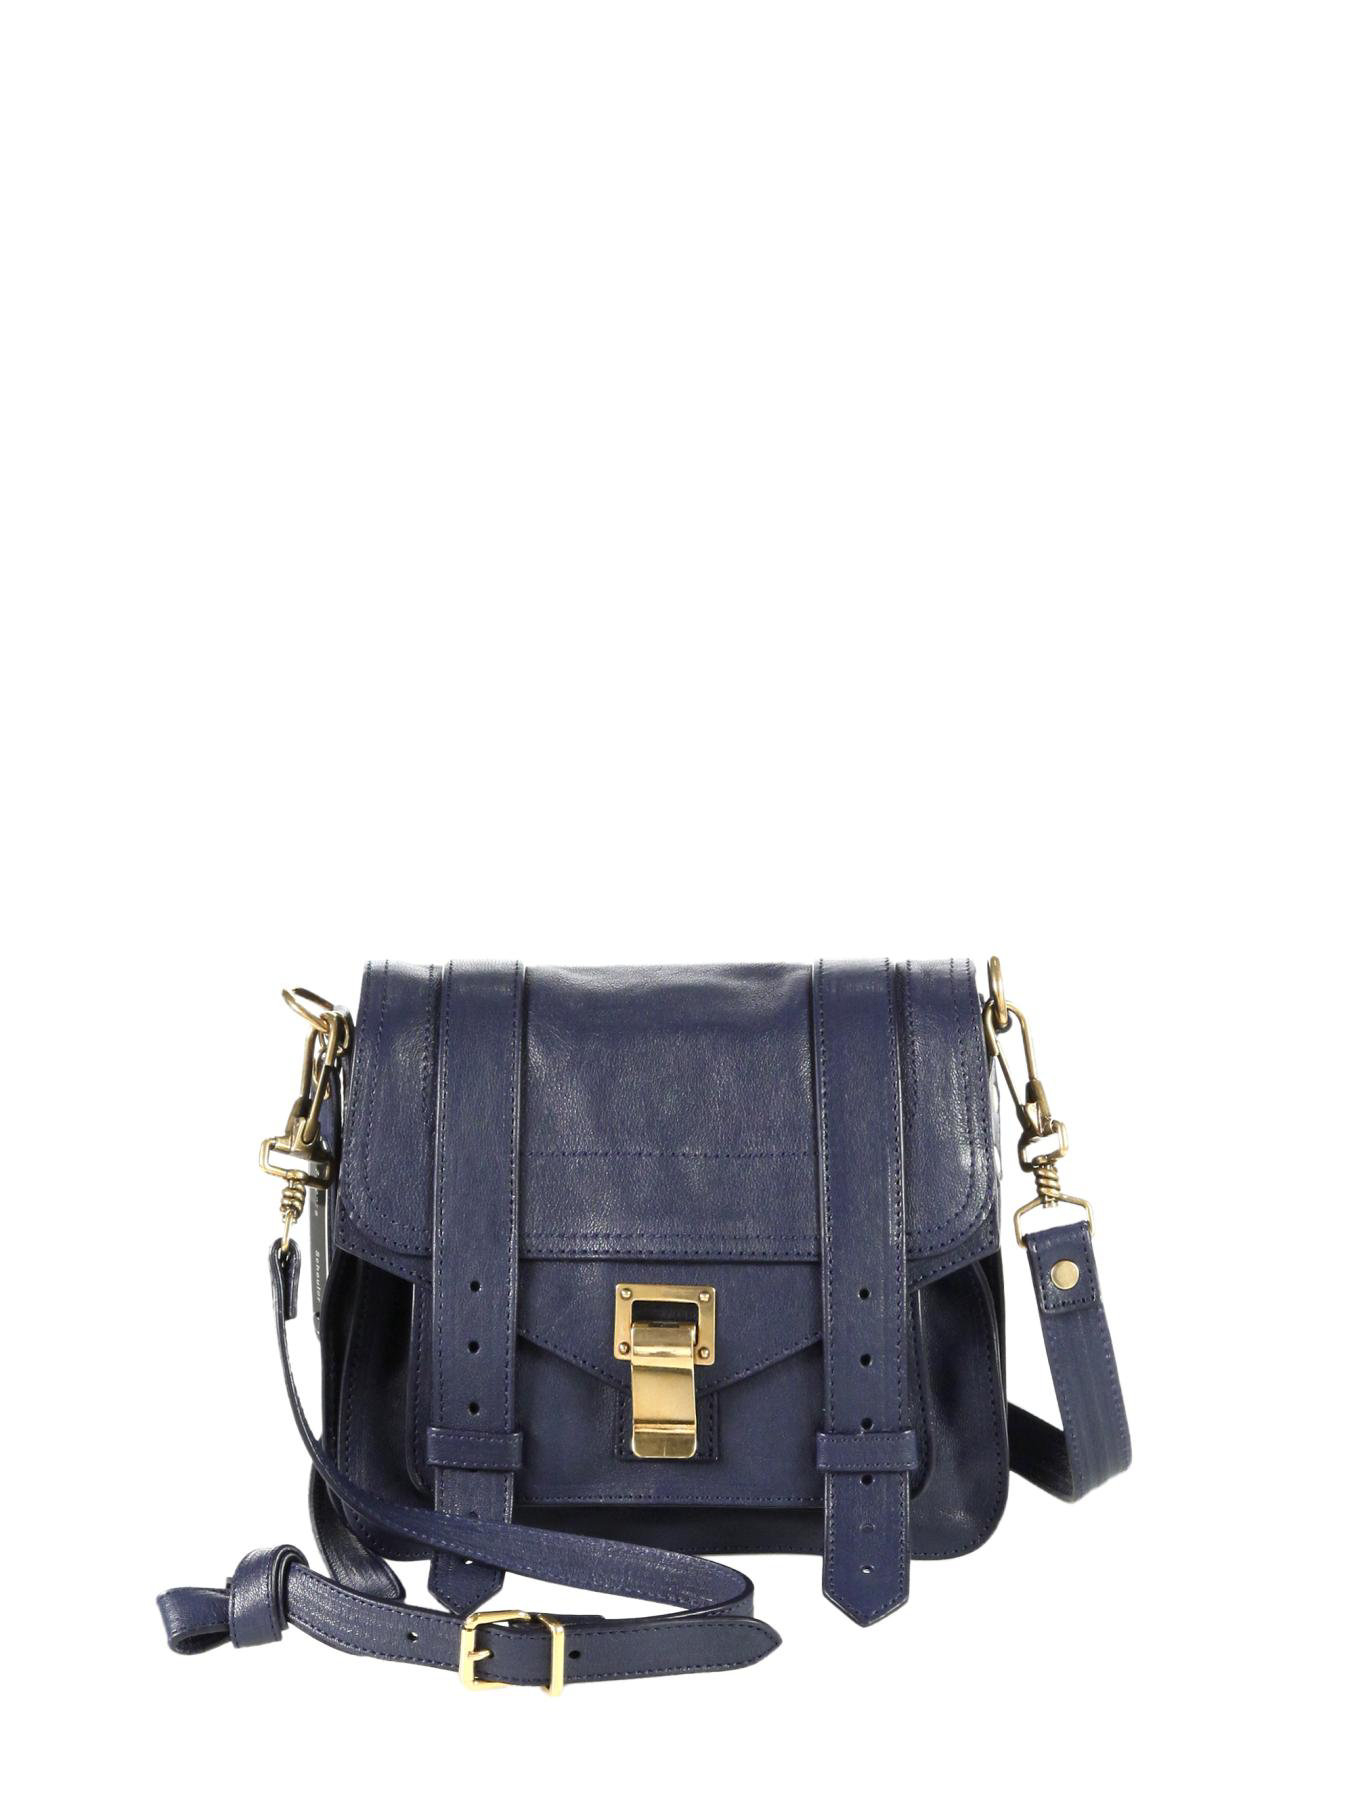 Ps1 Bag | Proenza Schouler Ps11 Tote | Proenza Schouler Ps1 Price